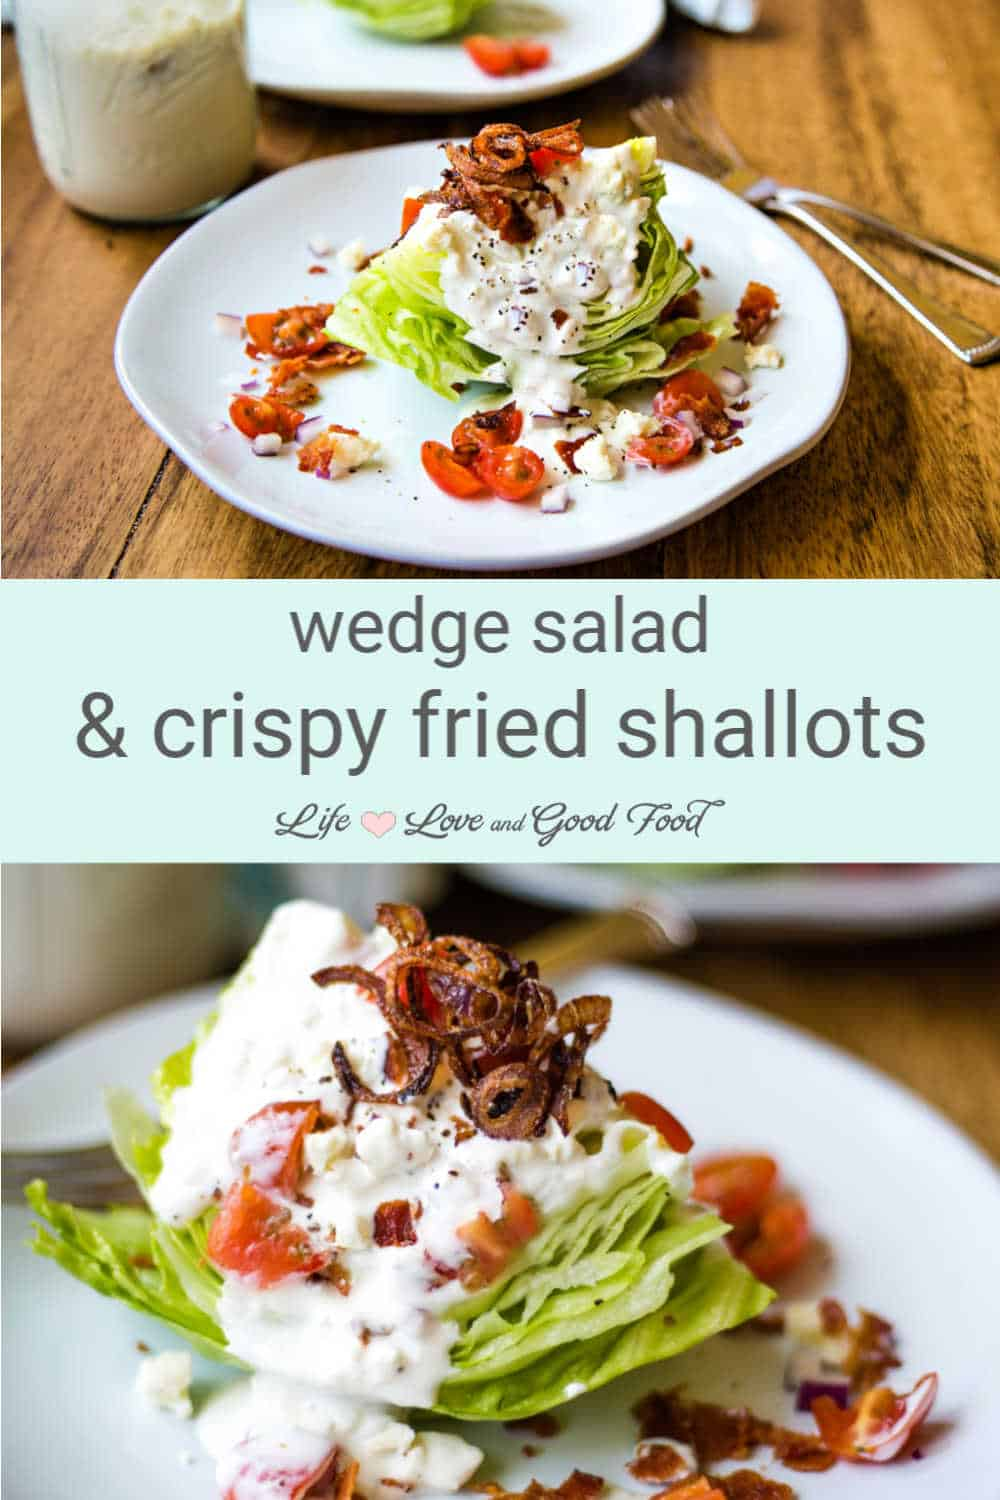 This ultimate iceberg wedge salad is fully loaded with crumbled bacon, diced tomatoes and red onions, drizzled with a delicious homemade blue cheese dressing with buttermilk, and garnished with crispy fried shallots.